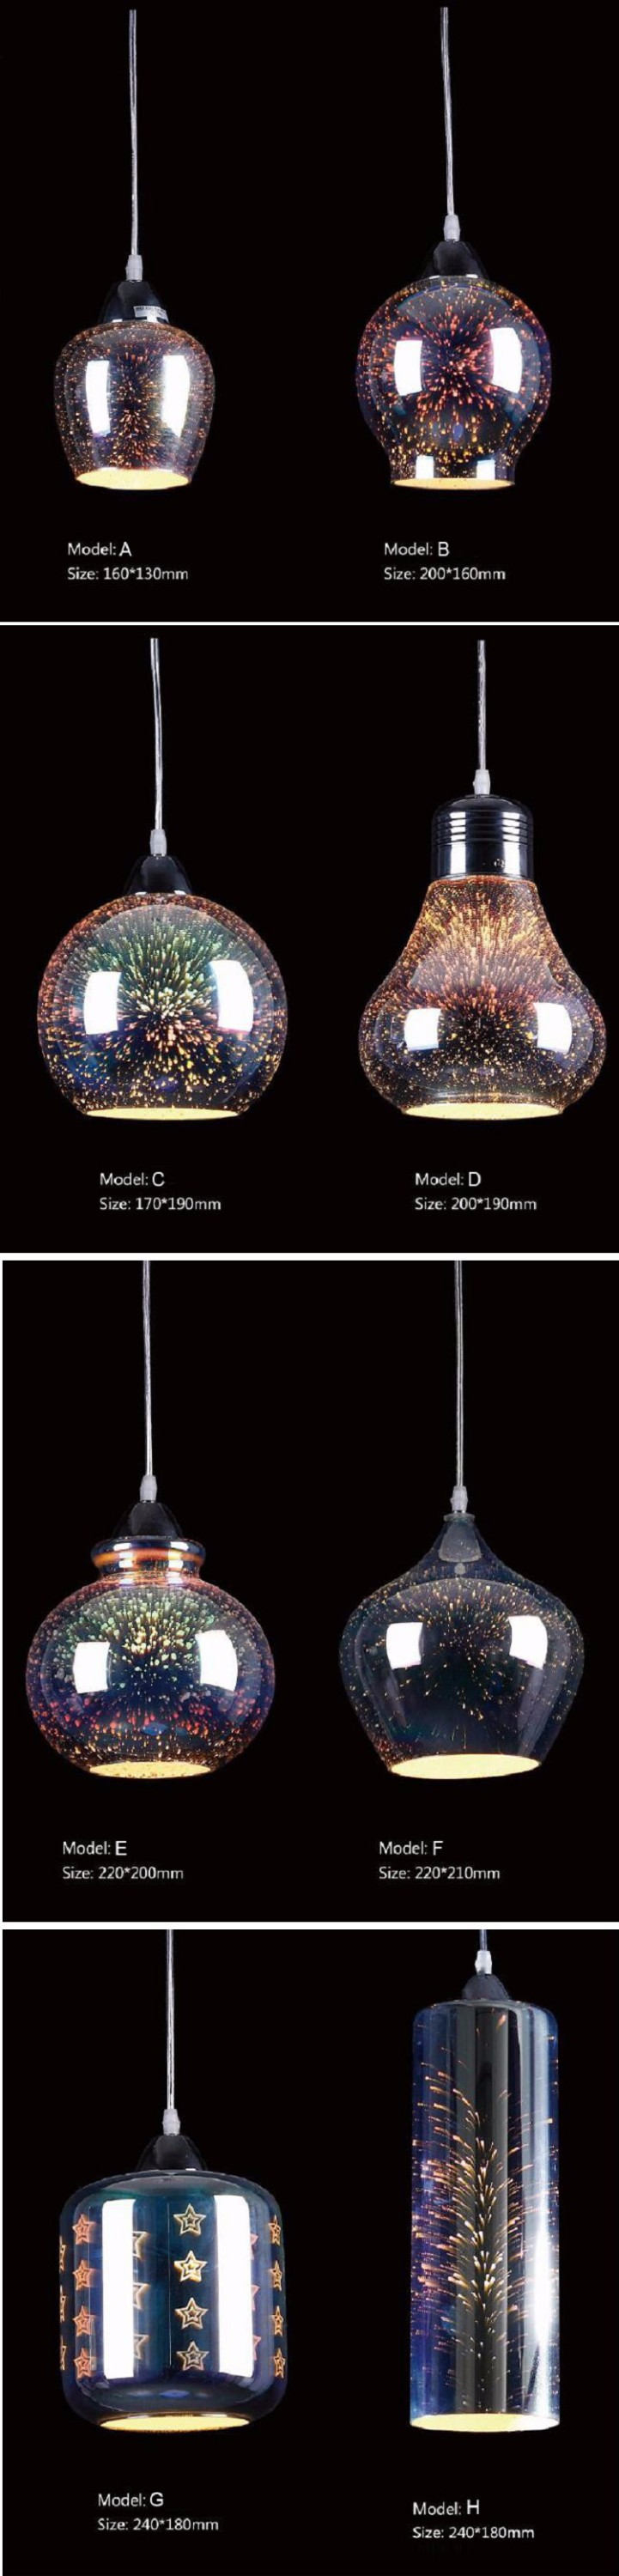 Fireworks Color Lamp Cover Diy Rotating Frosted Lighting Glass Shade For Lighting Parts Day Lamp Shade Buy Frosted Glass Lamp Shade Rotating Lamp Shade Diy Lamp Shade Product On Alibaba Com